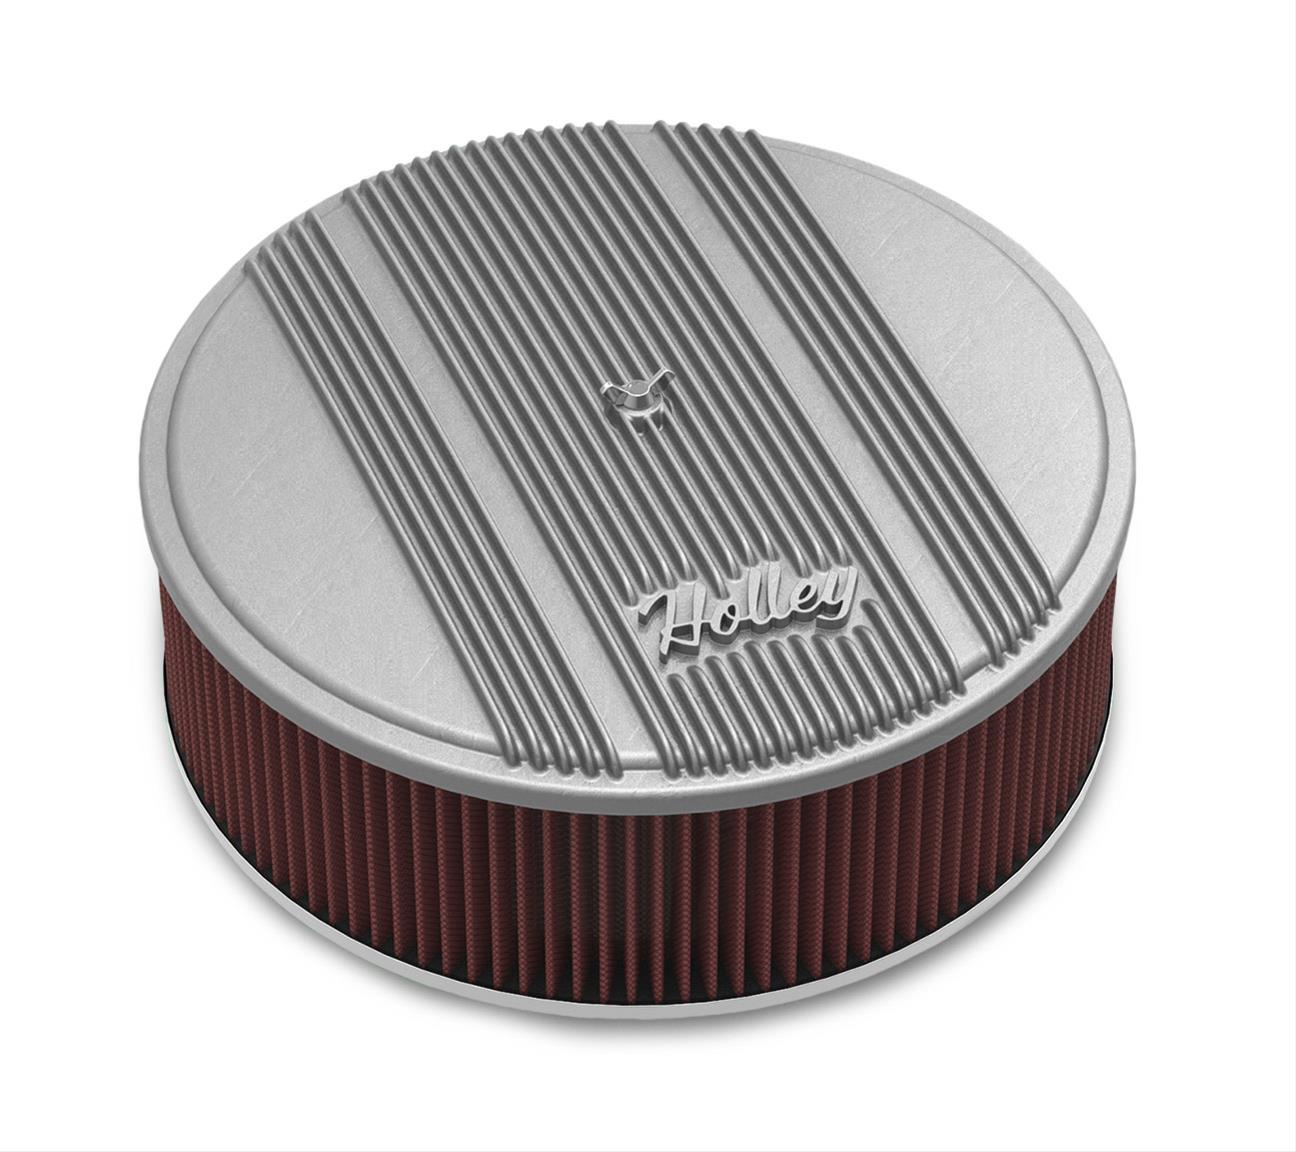 Holley Performance 120-153 Round Finned Air Cleaner